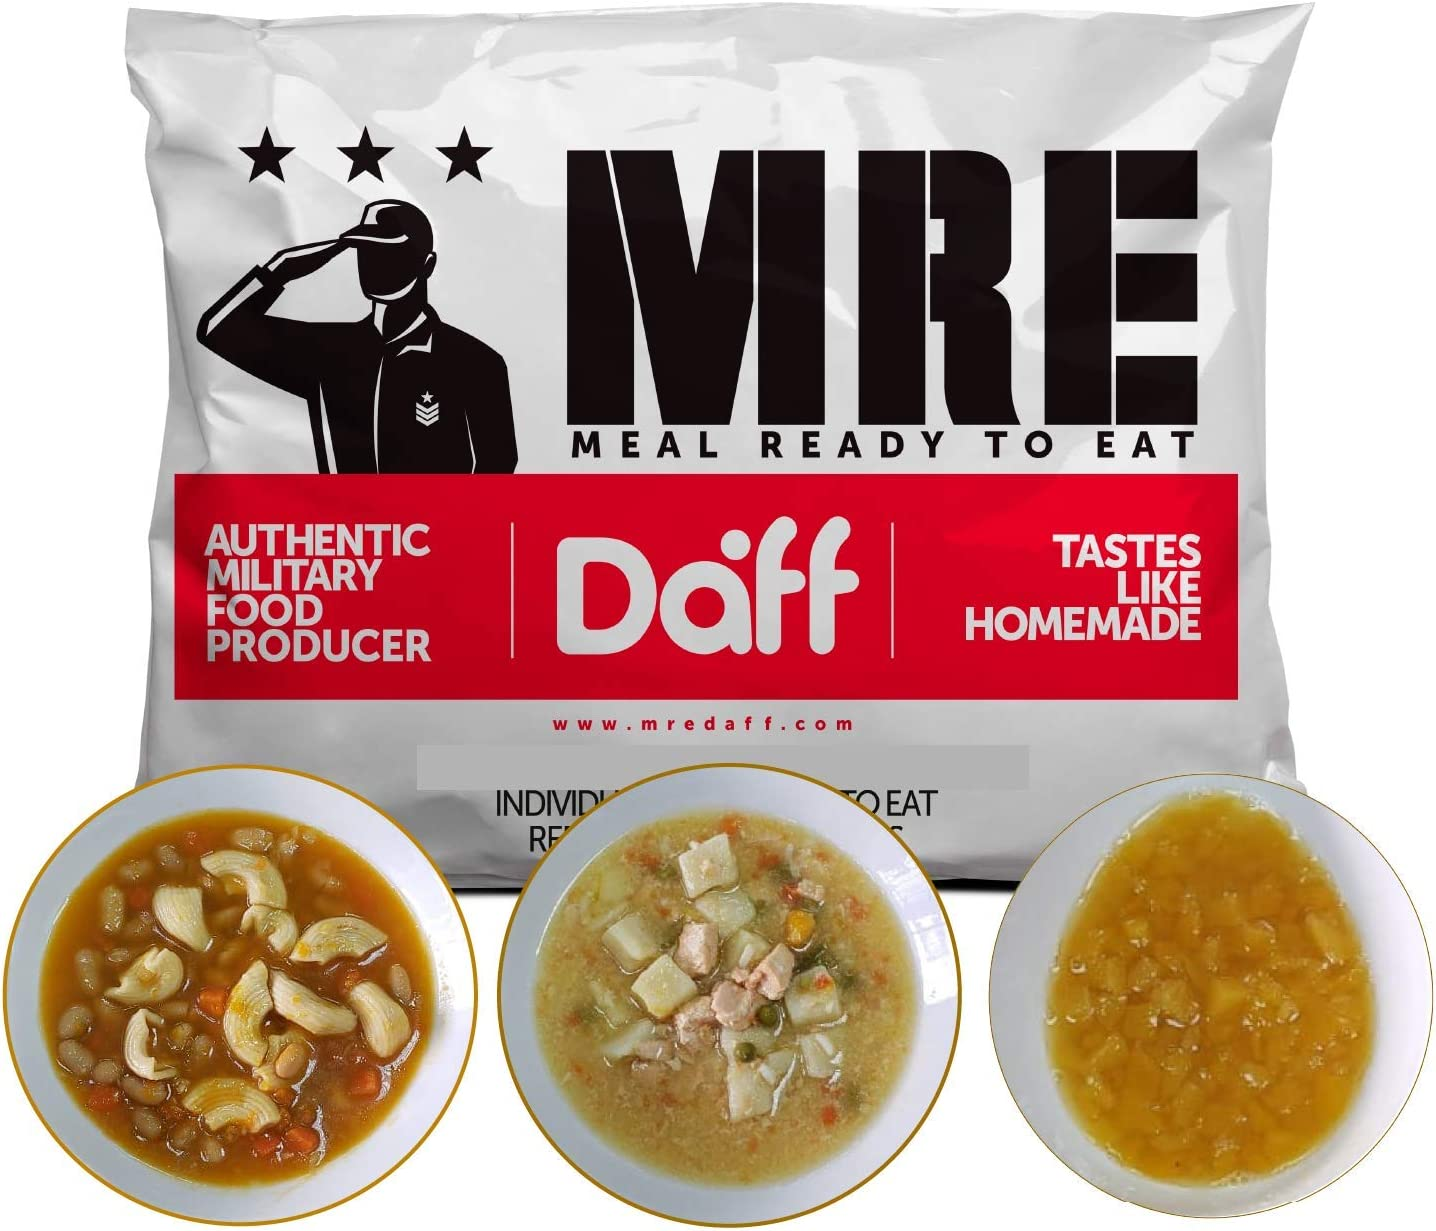 MRE Meals Military Style by DAFF. Full Day Pack 2 (1 Peach breakfast, 1 Pasta meal, 1 Salmon Stew meal) (3 Single meals). Ideal for Camping, Survival, and as Emergency Food. [1000 Calories/Bag]